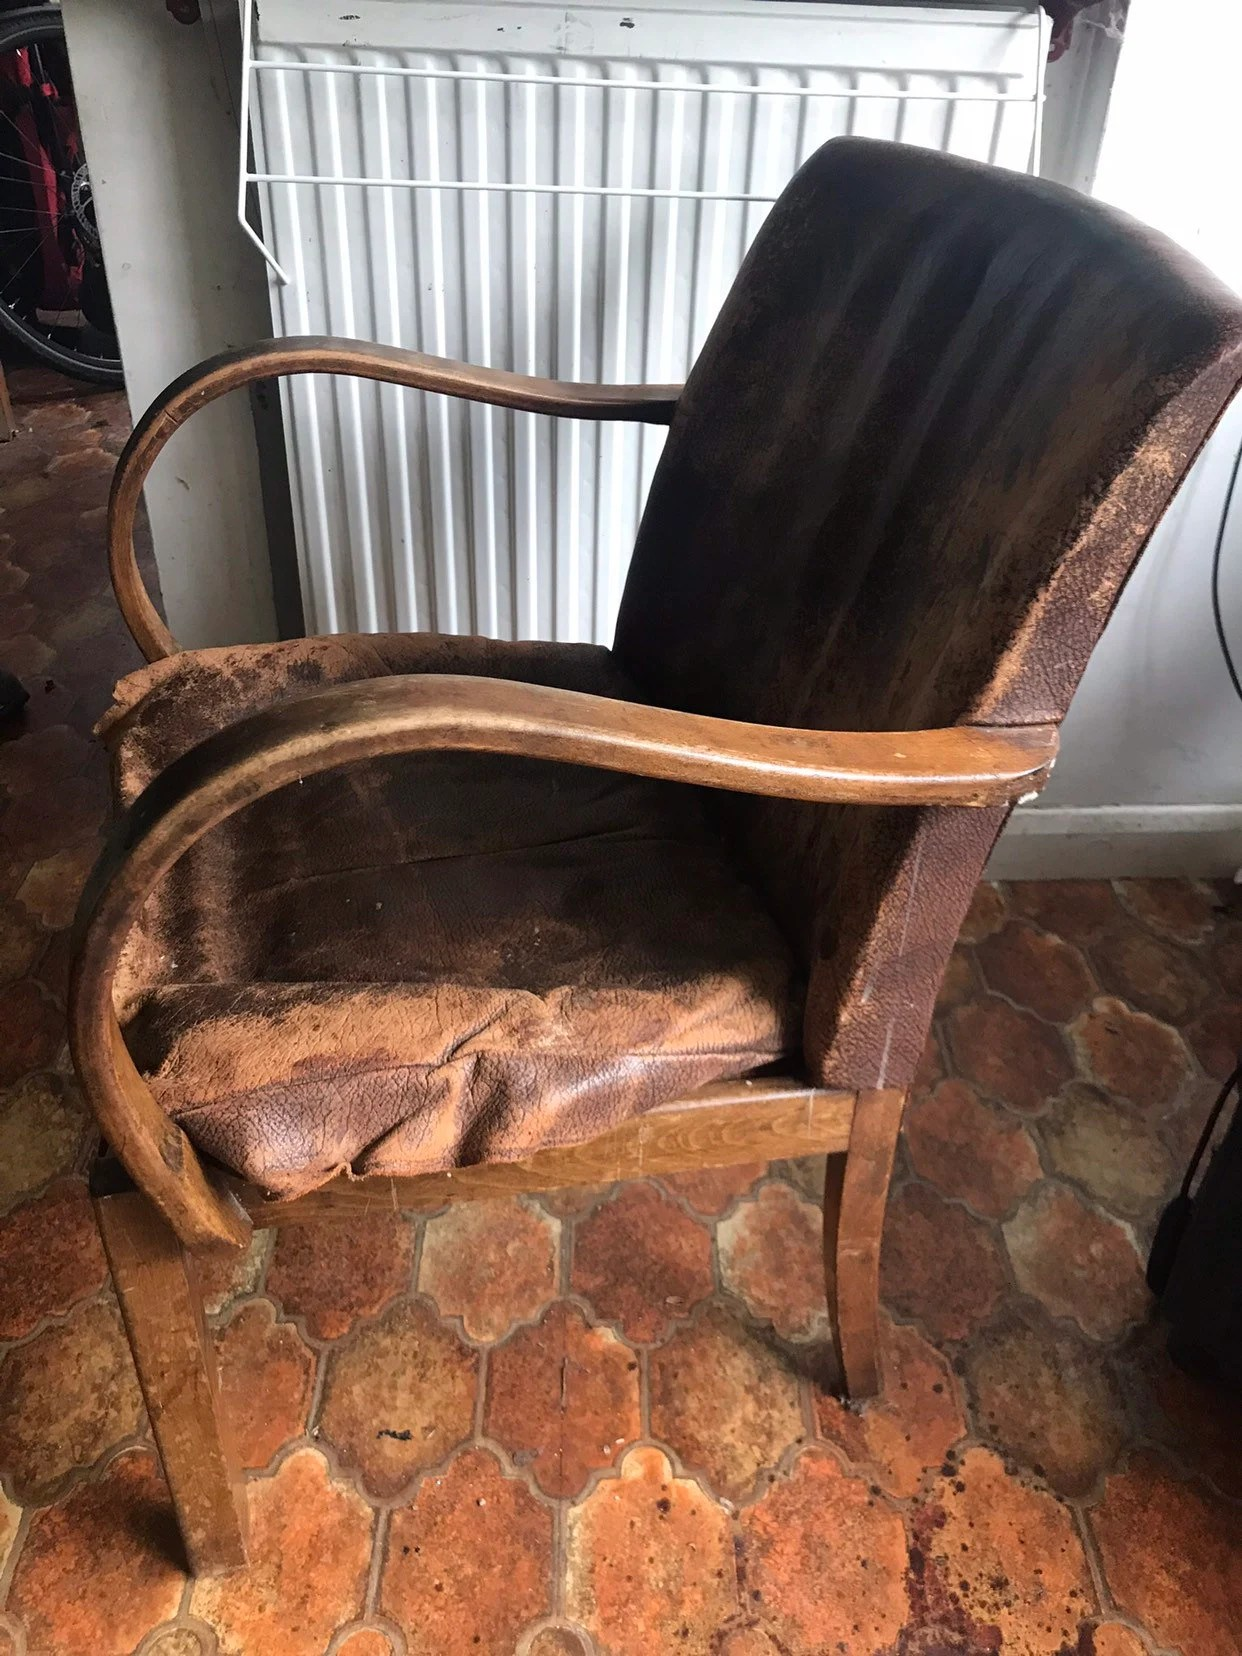 Reupholster Egg Chair Parker Knowles Leather Chair Needs Repair And Reupholstering